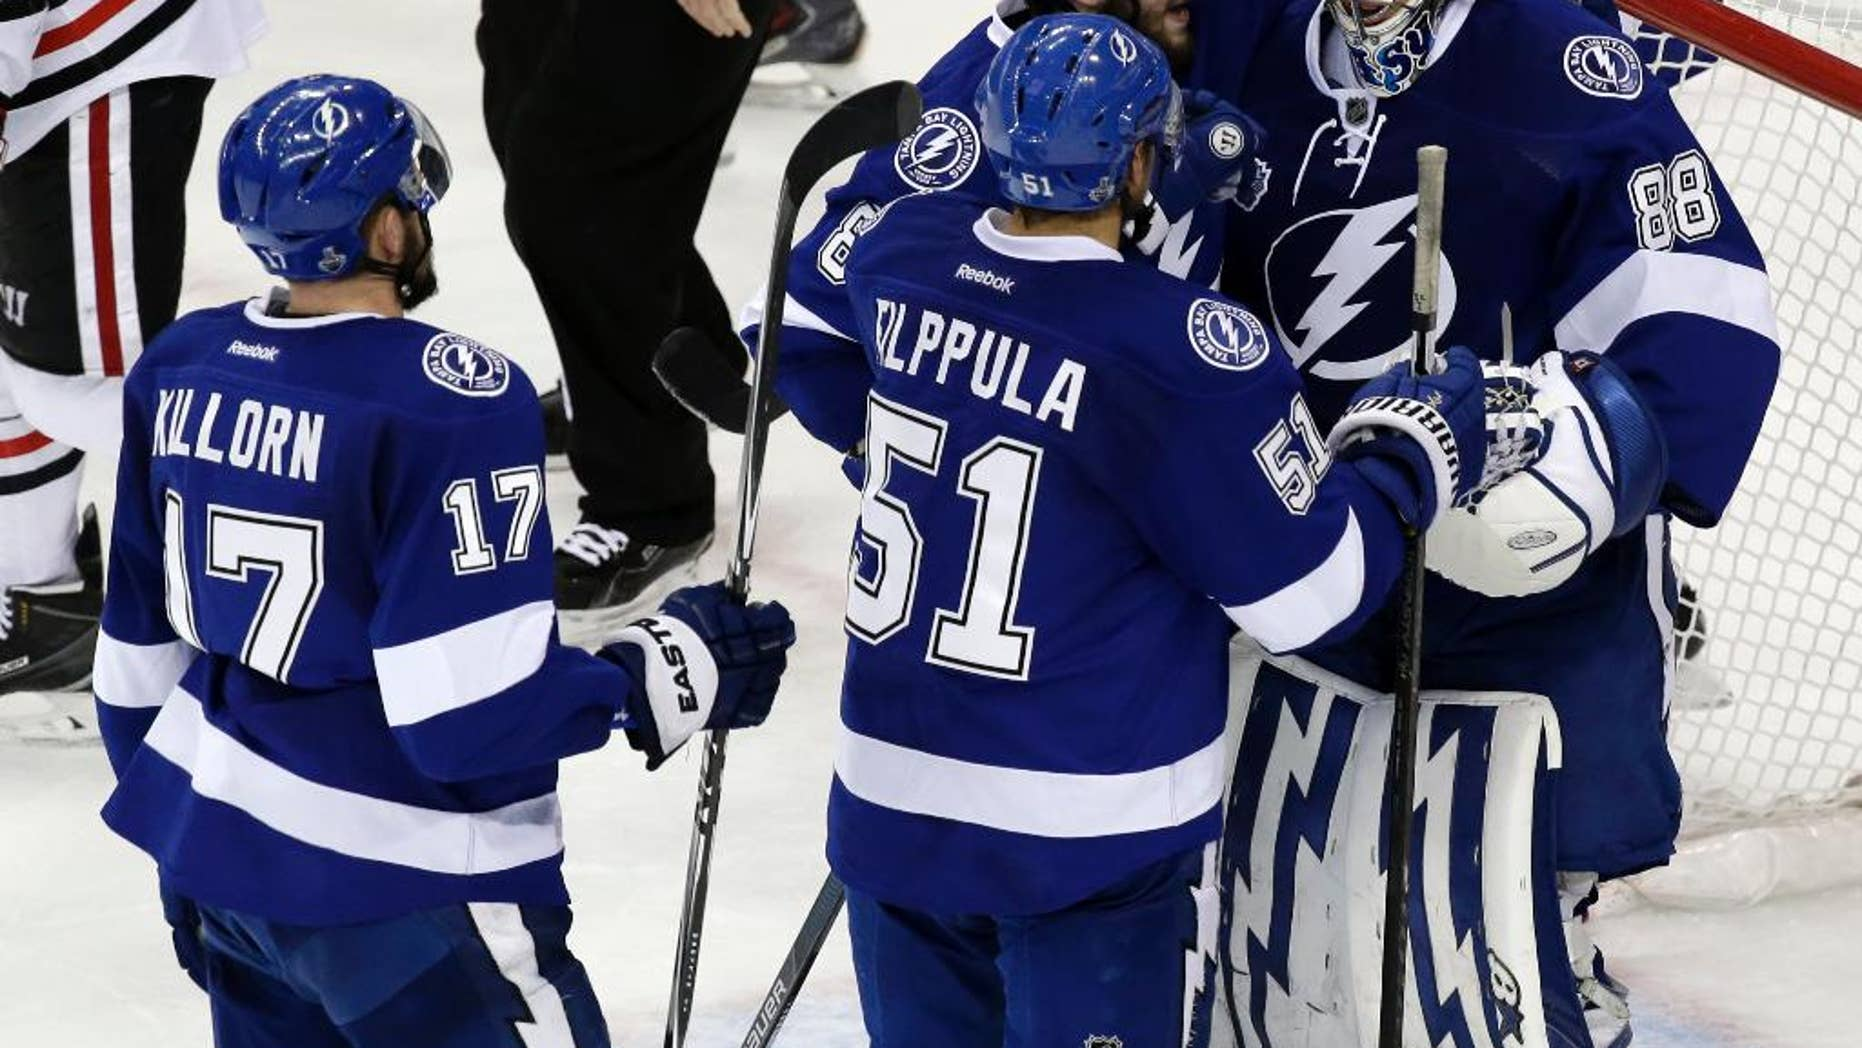 Tampa Bay Lightning players greet backup goalie Andrei Vasilevskiy after their win against the Chicago Blackhawks in Game 2 of the NHL hockey Stanley Cup Final on Saturday, June 6, 2015, in Tampa Fla. (AP Photo/John Raoux)